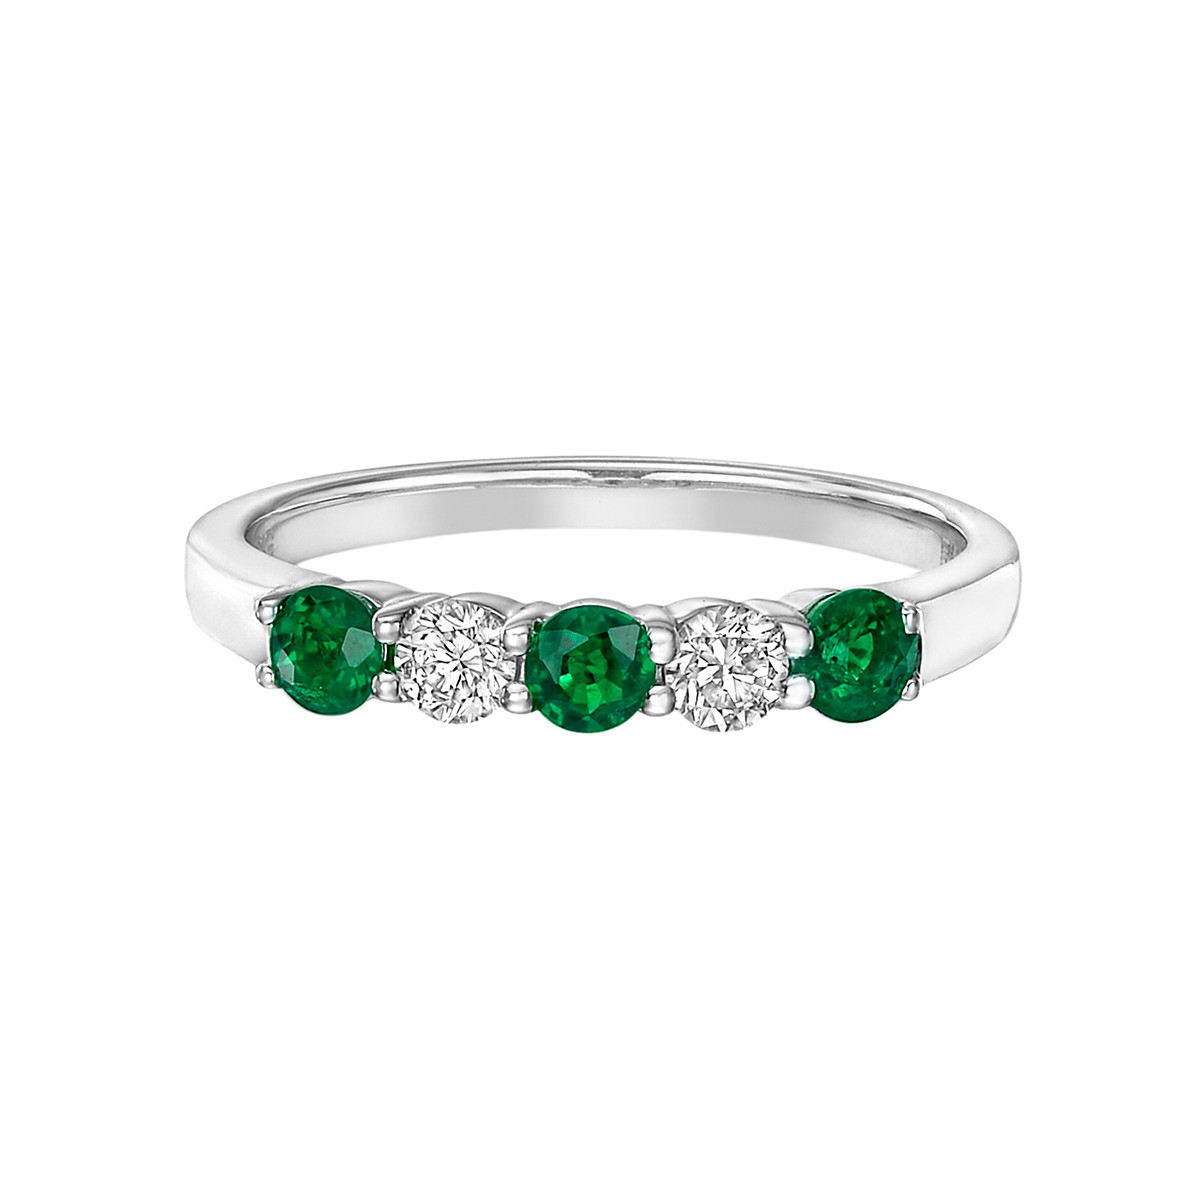 Five-Stone Emerald & Diamond Band Ring